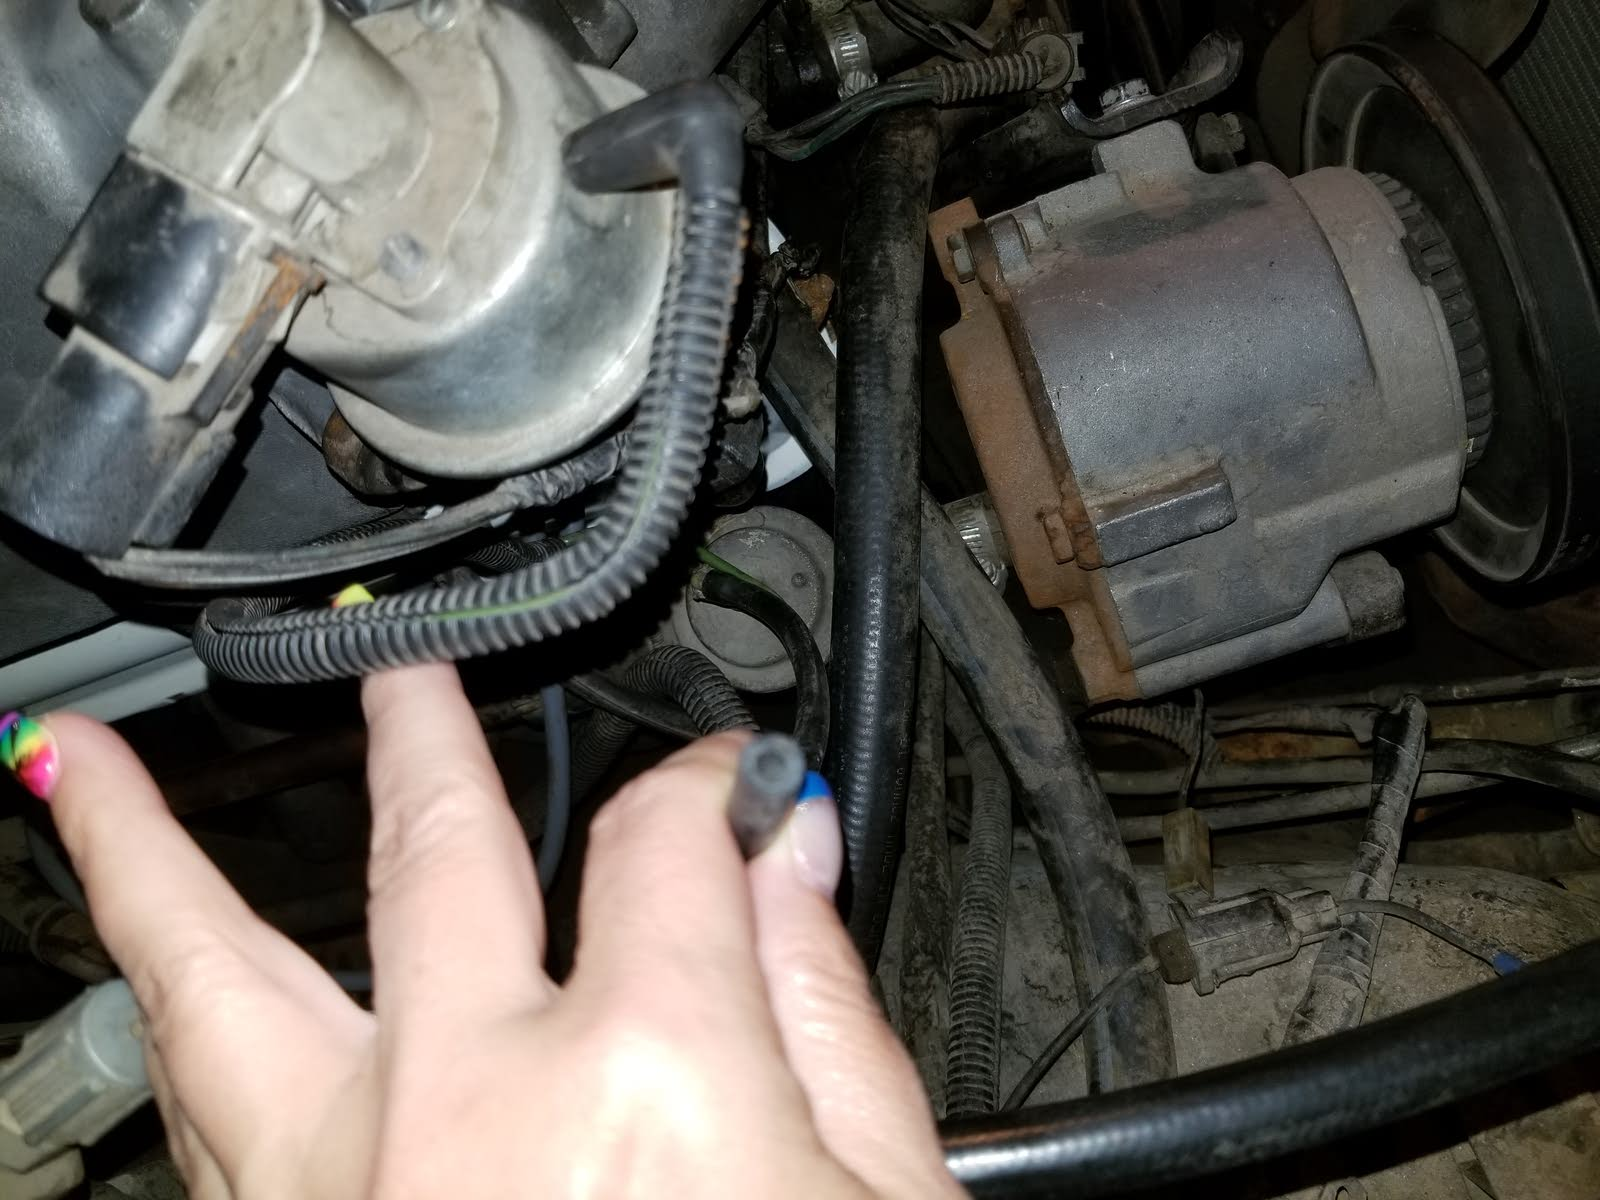 Ford F-150 Questions - I am looking for a vac hose ... on 1984 corvette wiring diagram, 68 camaro wiring diagram, 66 impala wiring diagram, 85 mustang transmission, 72 nova wiring diagram, 85 mustang exhaust, 85 mustang fuse box diagram, 70 duster wiring diagram, 66 chevelle wiring diagram, 85 mustang clutch, 70 nova wiring diagram, 85 mustang engine, 85 mustang starter, 69 camaro wiring diagram, 87 corvette wiring diagram, 72 chevelle wiring diagram, 2010 mustang fuse box diagram, 66 corvette wiring diagram, 68 nova wiring diagram, 85 mustang charging system,